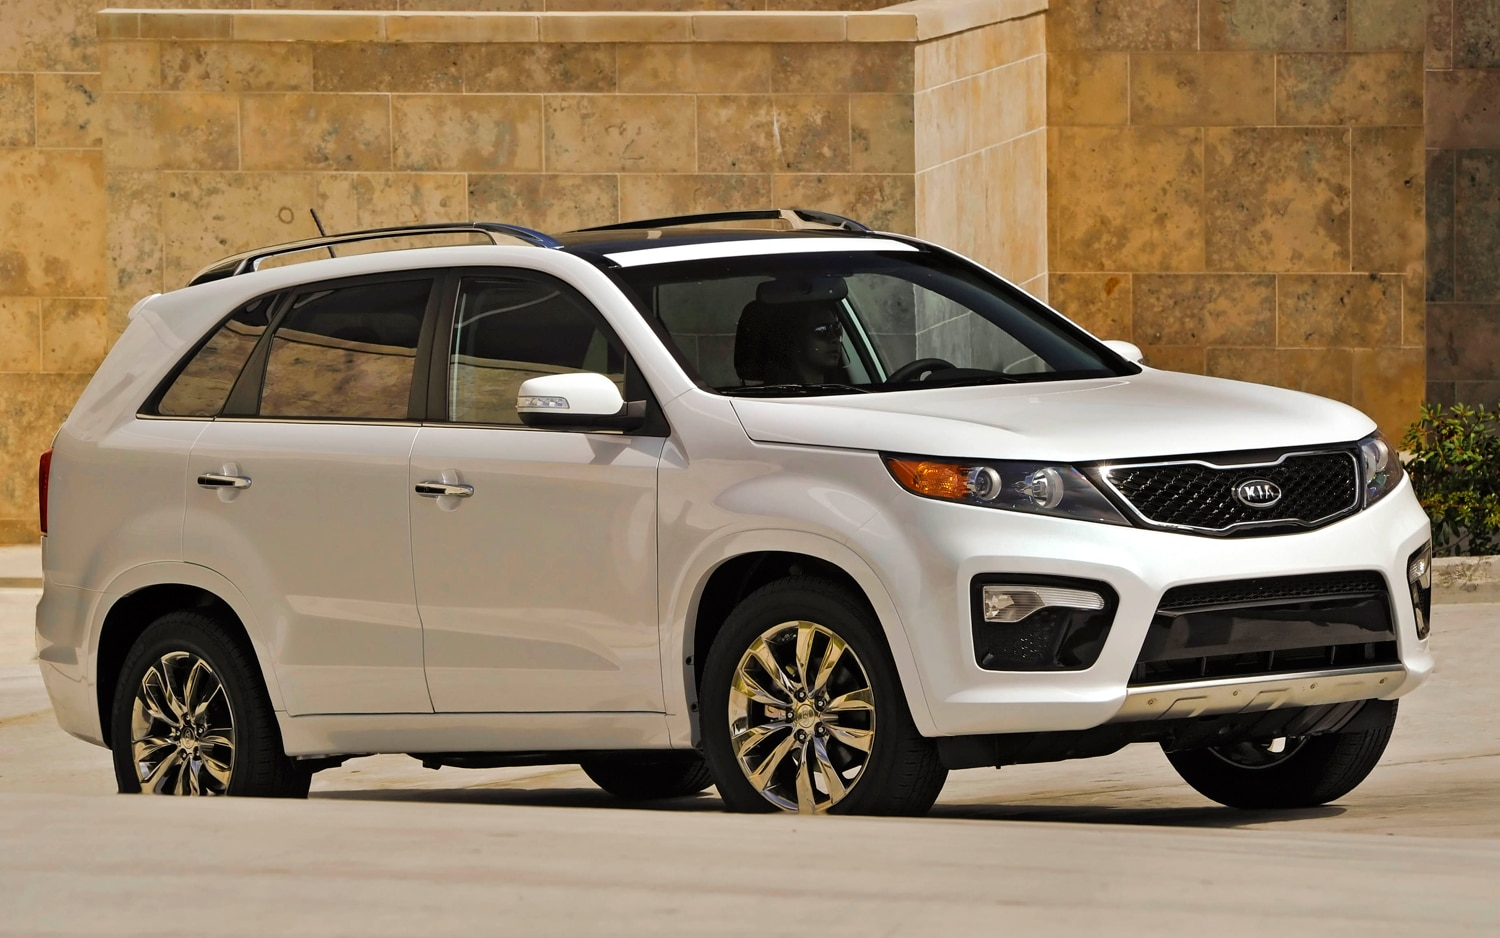 2012 Kia Sorento Front Right Side View 8